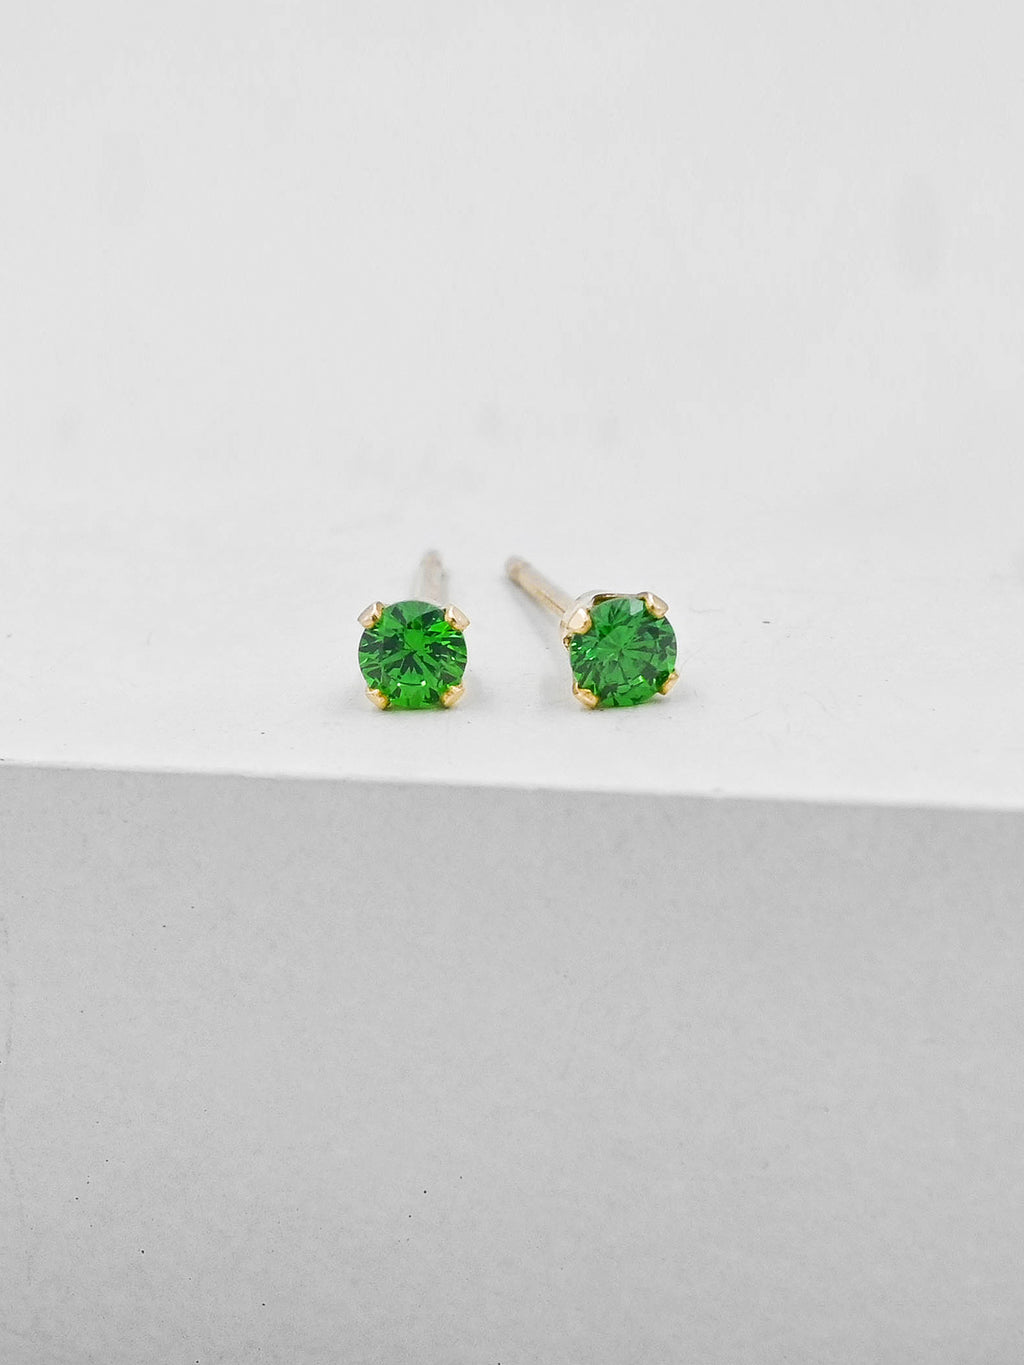 Green Round CZ Gold Plated Solitaire Stud Earrings by The Faint Hearted Jewelry